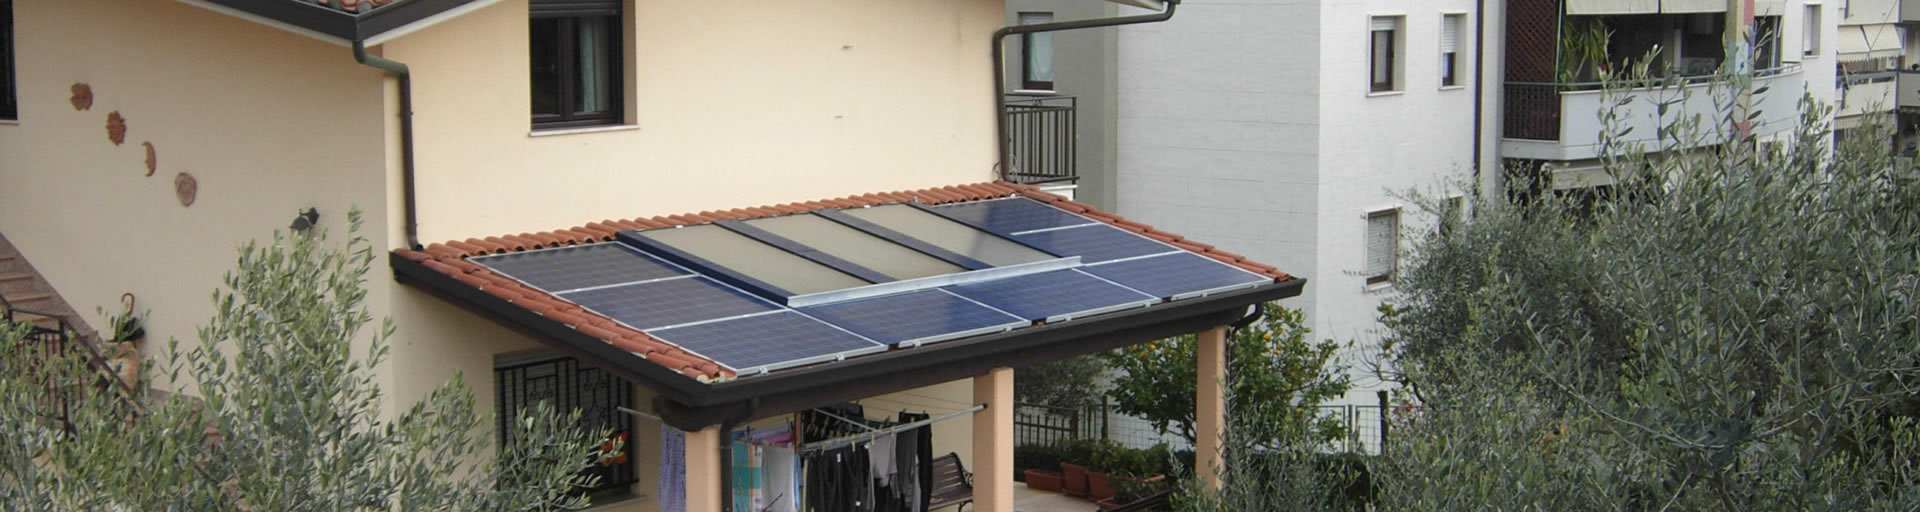 Integrated solar heating and photovoltaics on roof